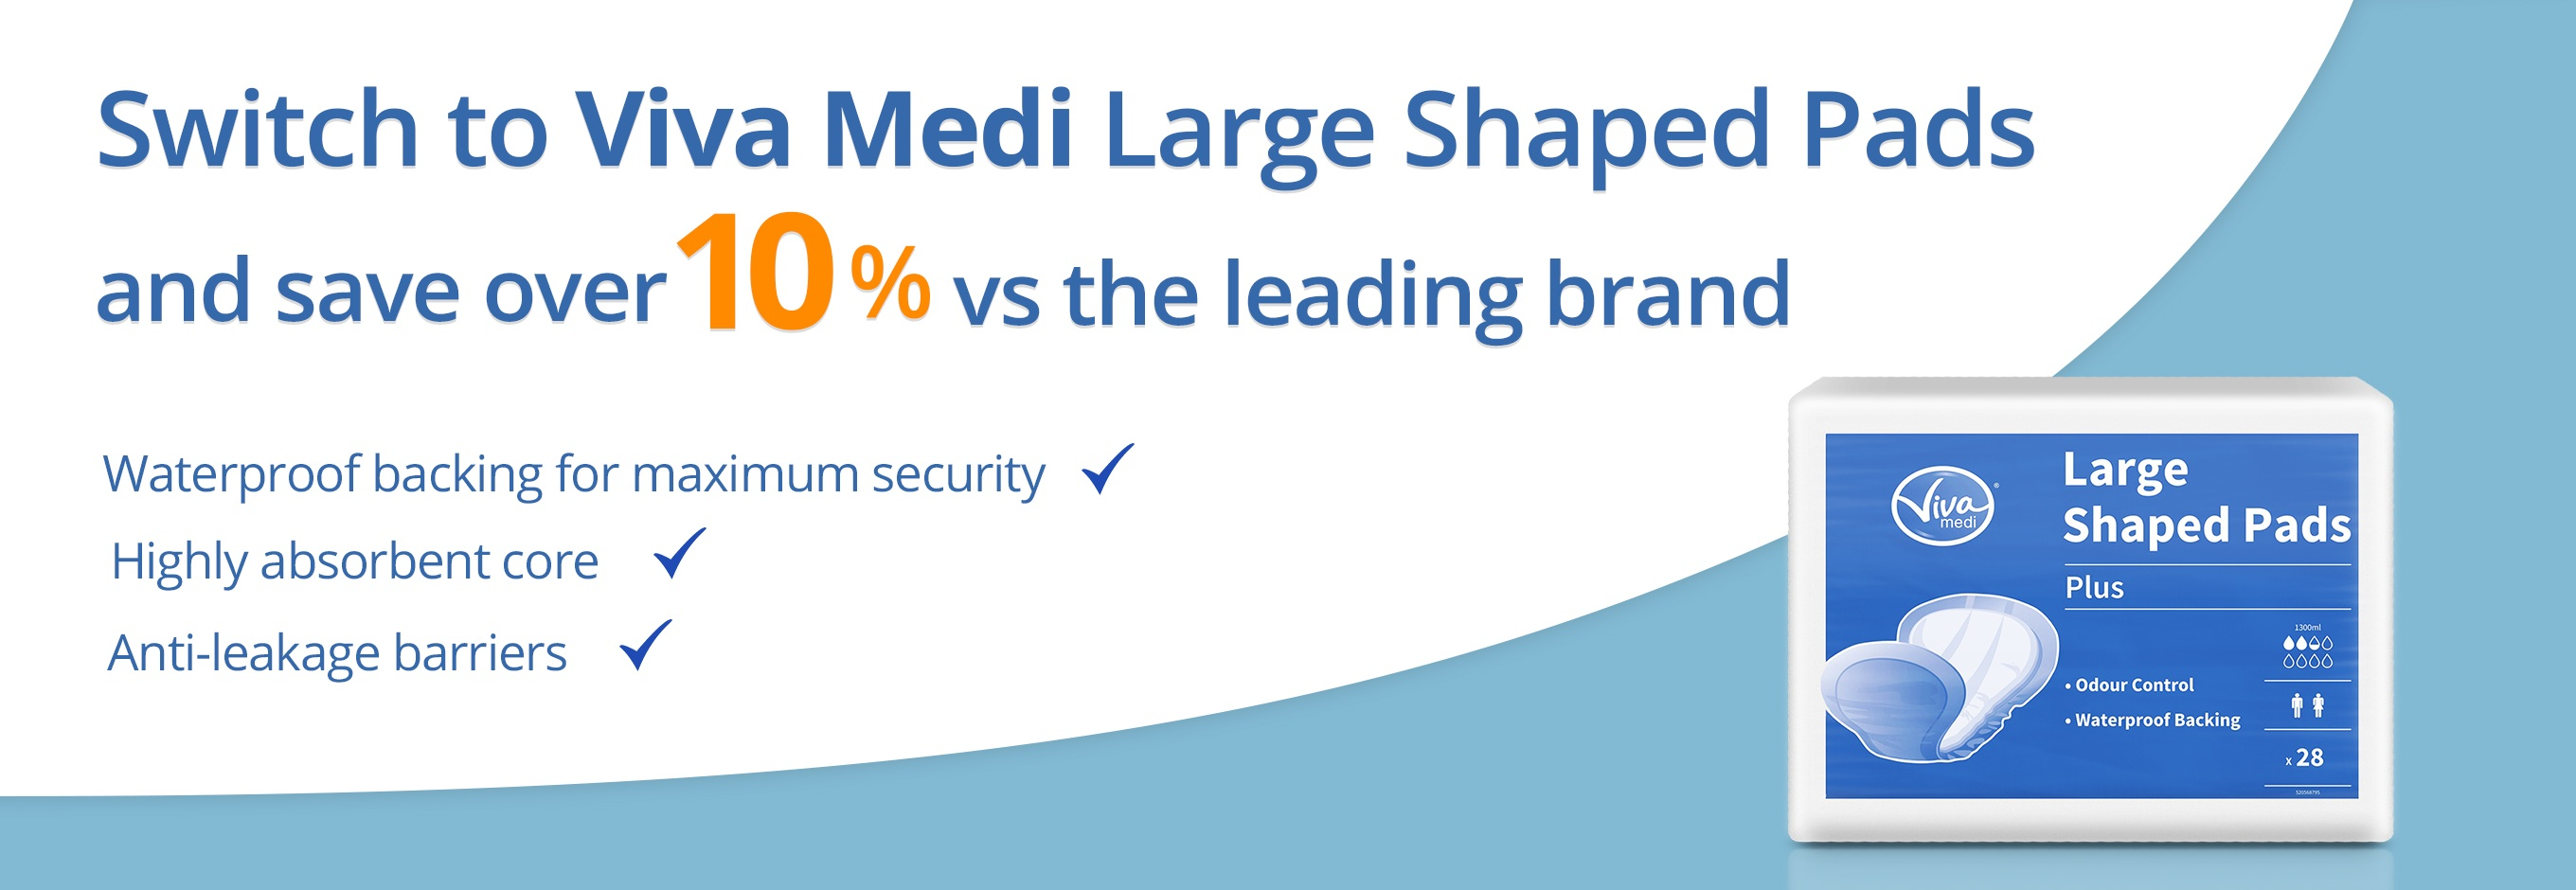 Switch to Viva Medi Large Shaped Pads